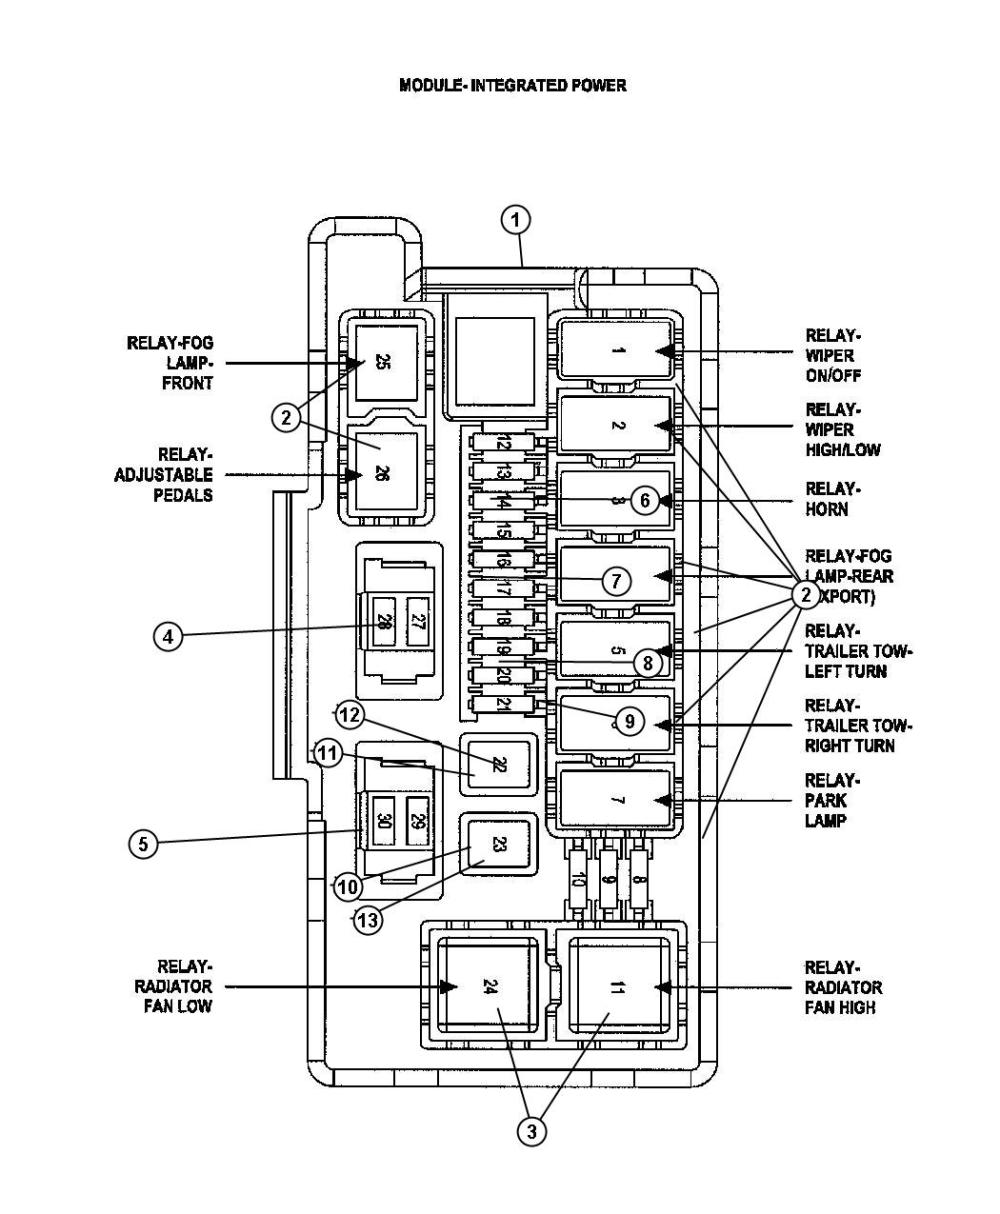 medium resolution of 2006 jeep commander power distribution center front 2010 jeep patriot fuse box diagram fuse box diagram